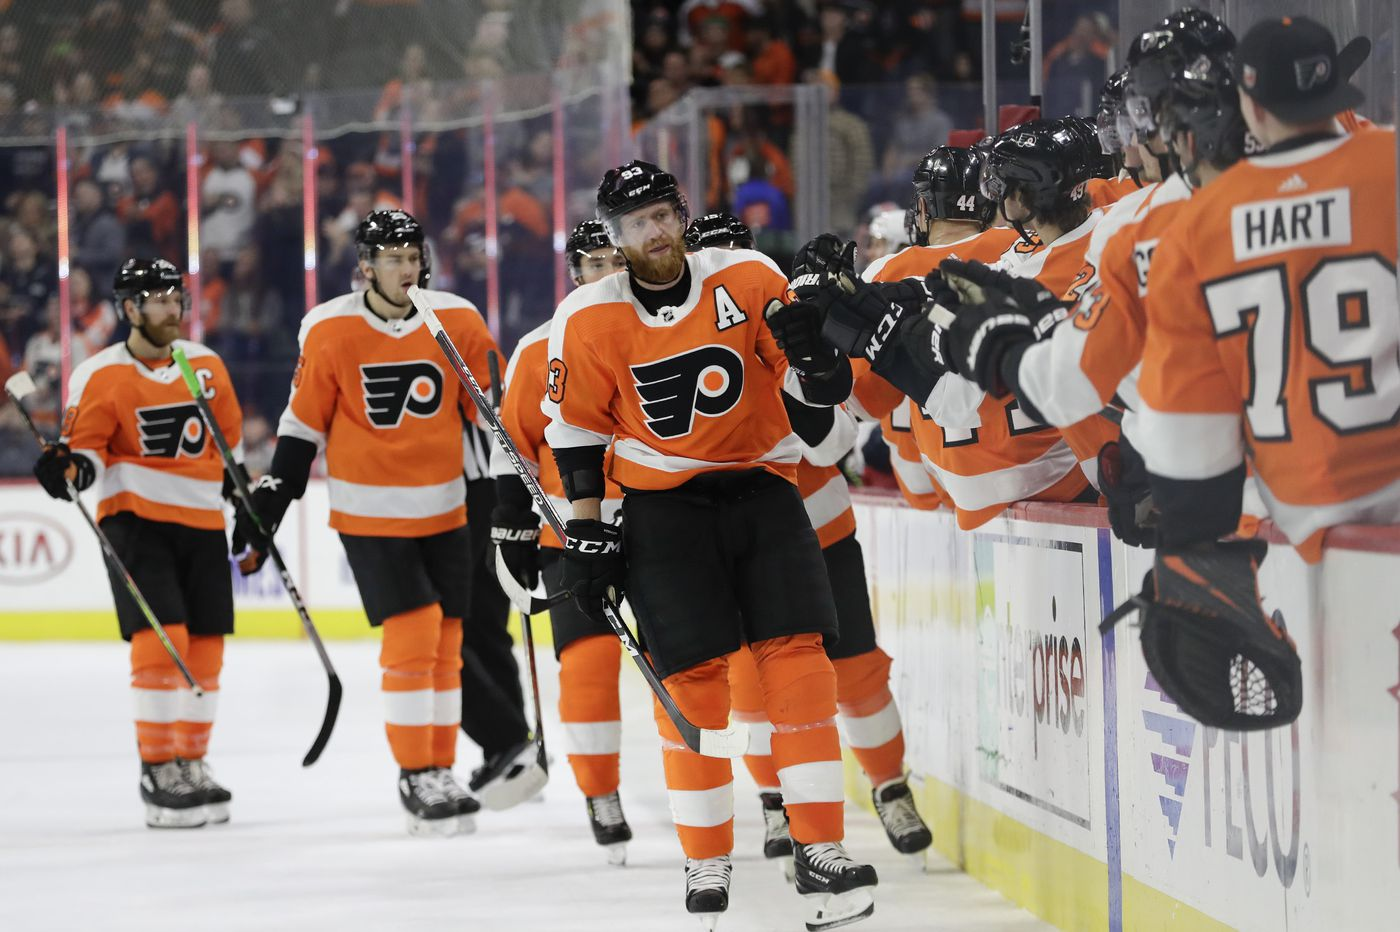 Flyers' victory song getting lots of play during team's hot streak